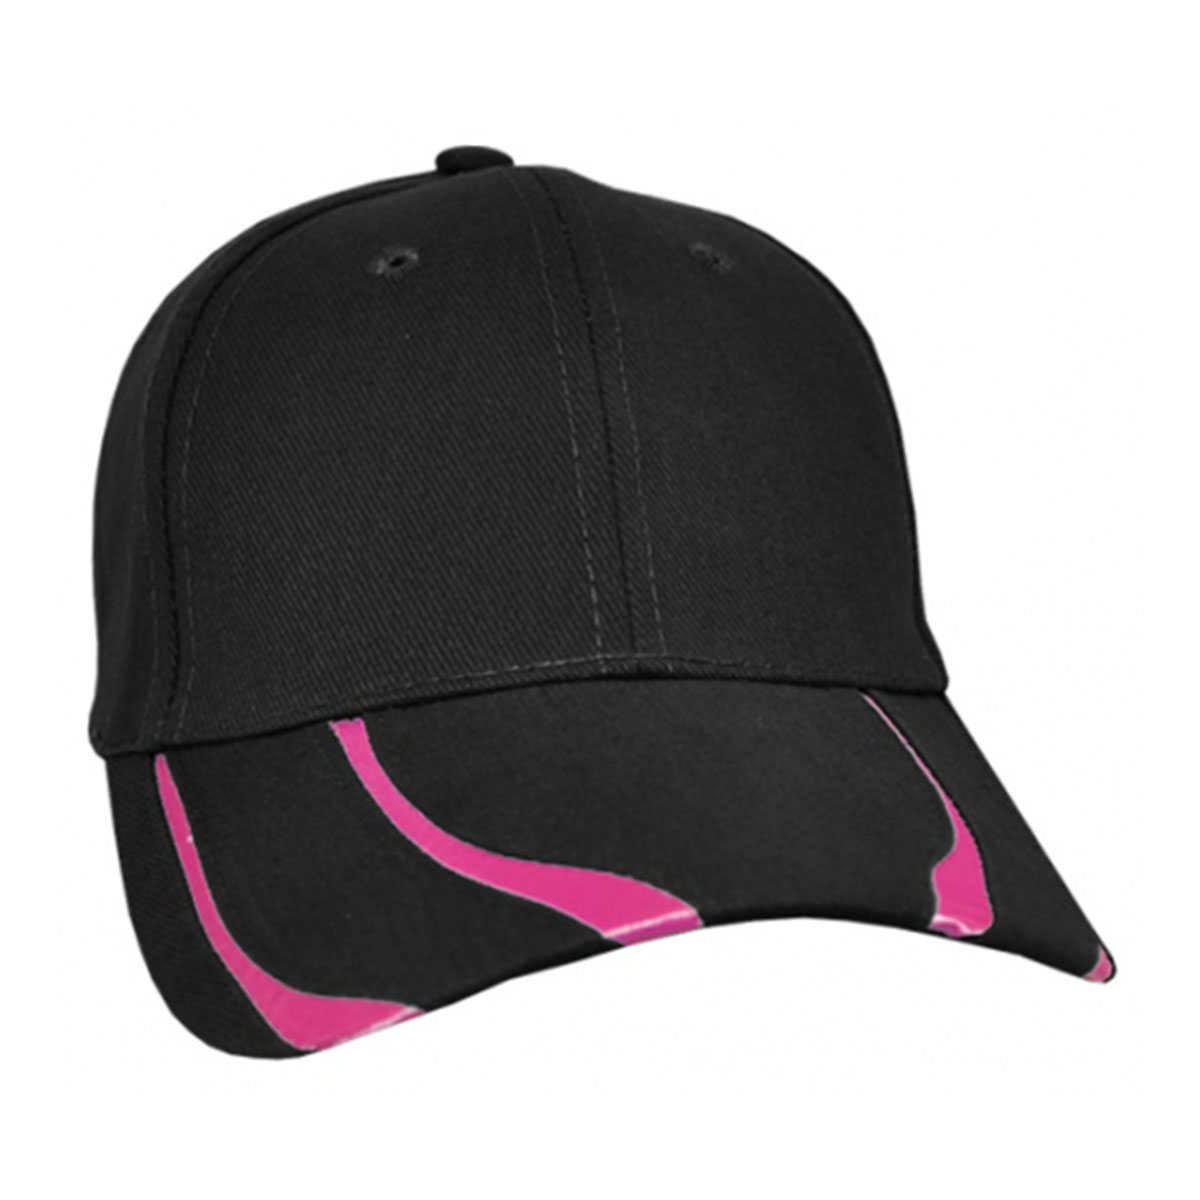 Striker Cap-Black / Hot Pink